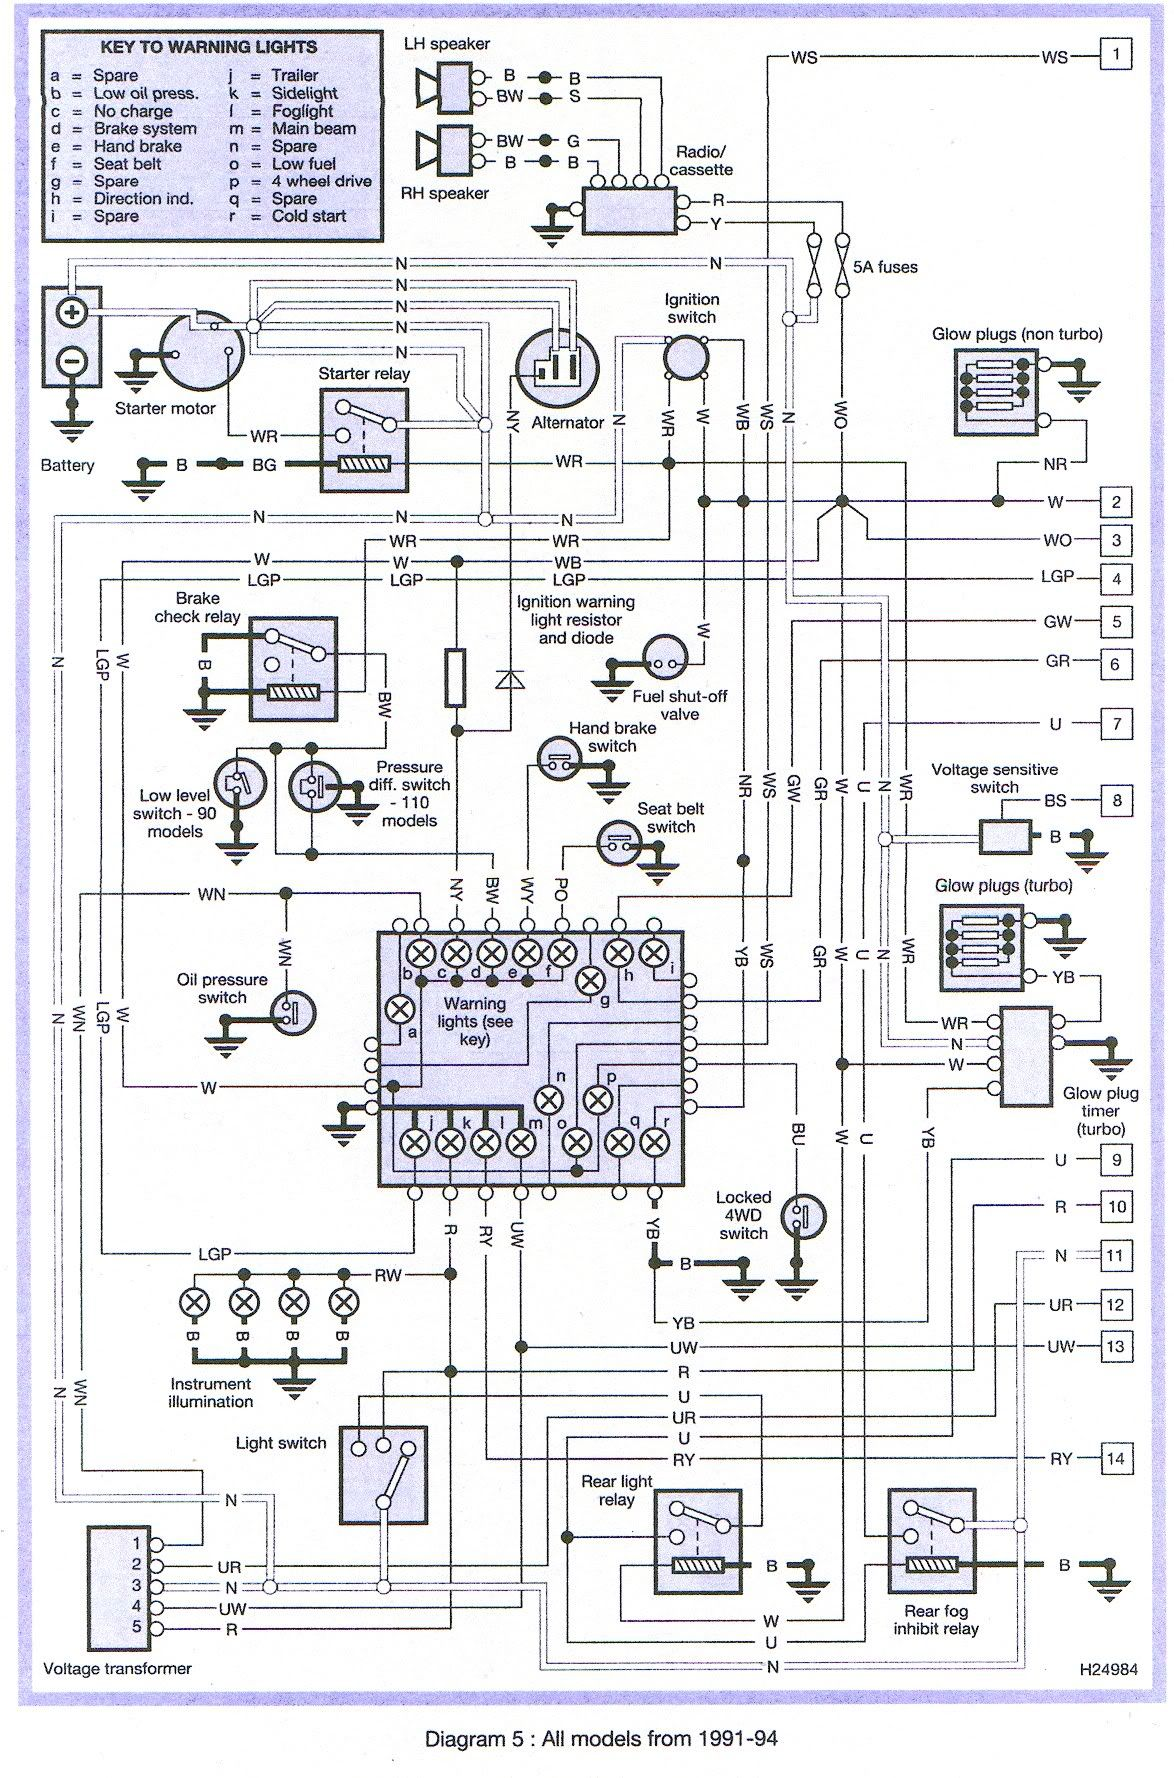 land rover discovery 1 radio wiring diagram wiring diagrams scematic mgb wiring diagram 97 land [ 1174 x 1778 Pixel ]